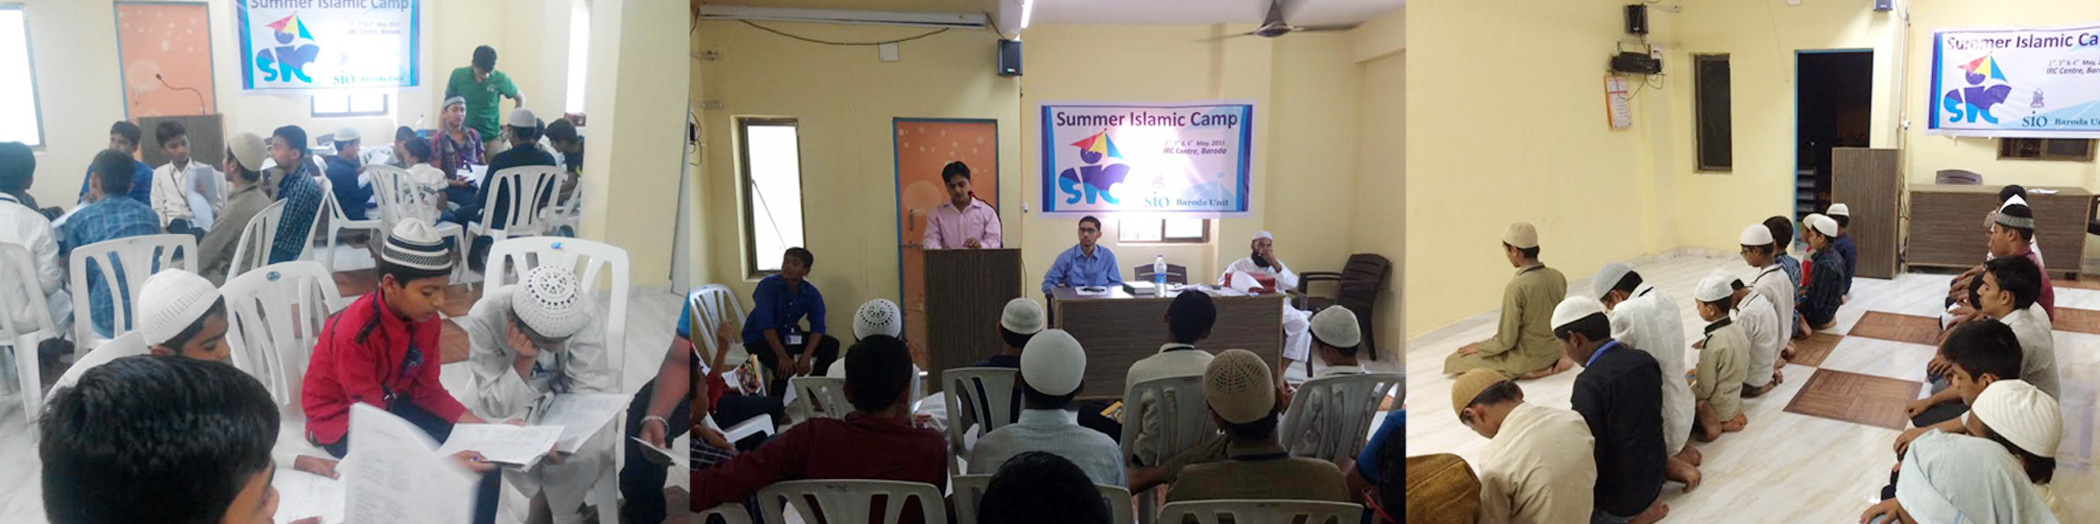 Summer Camp organised by SIO Gujarat